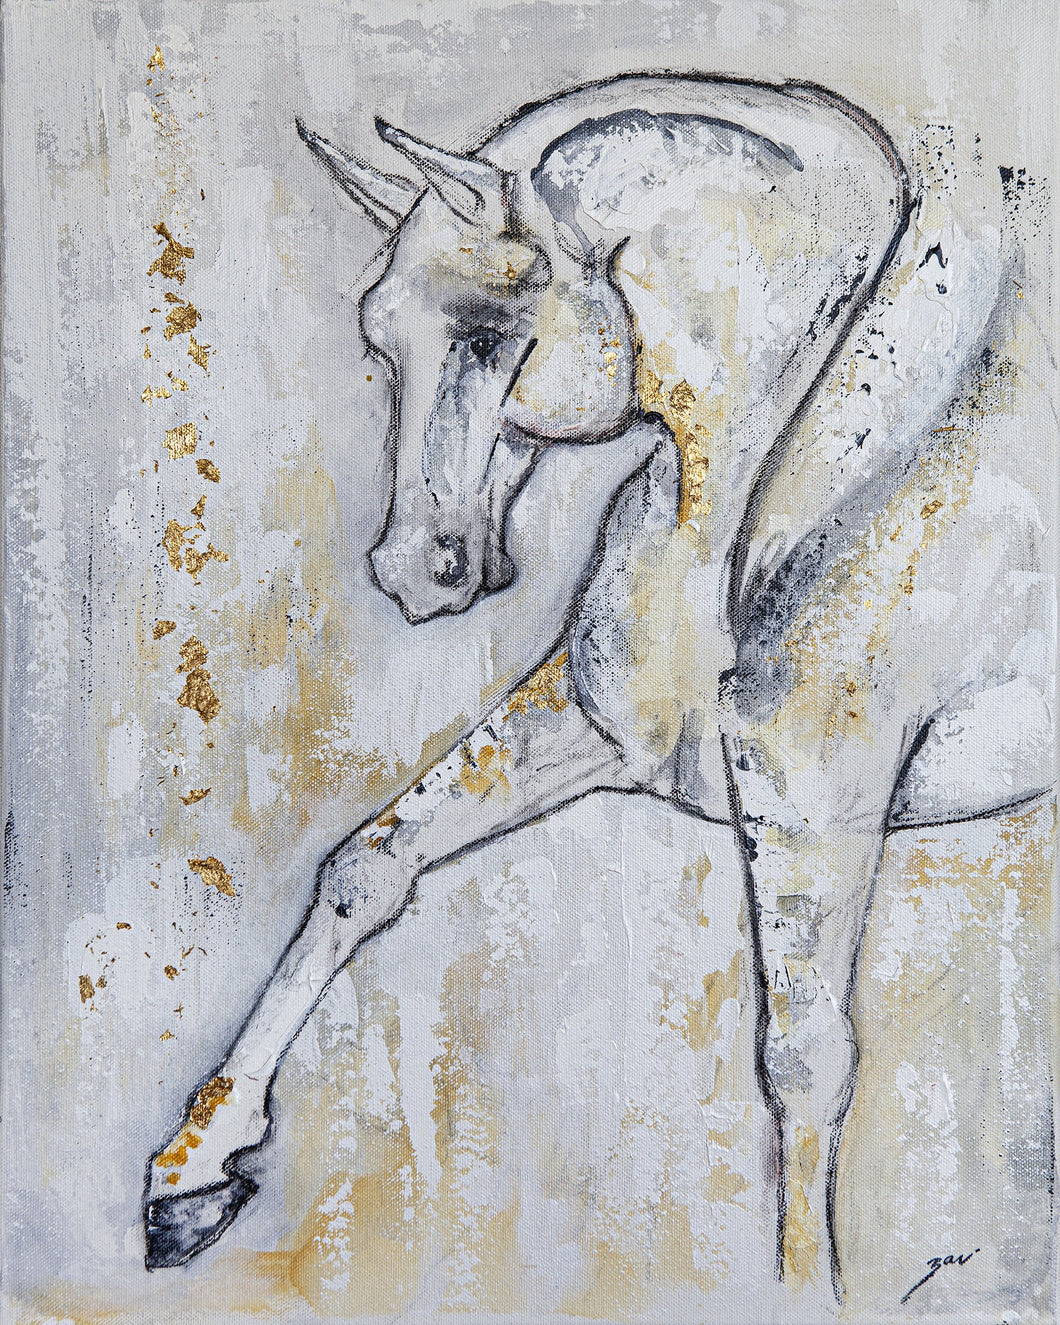 I have always been fascinated and passionate about horses. Painting these animals simply came naturally. Living on a farm surrounded by them I delved into their form. I want to show their majesty and magnificent while emphasizing their soft kindness and vulnerability. These animals are truly honest creatures. I wonder how the world would benefit from the lesson of the horse.  Artist: Zari Kazandjian  Medium: Acrylic and metallic leaf on canvas  Dimensions: 16